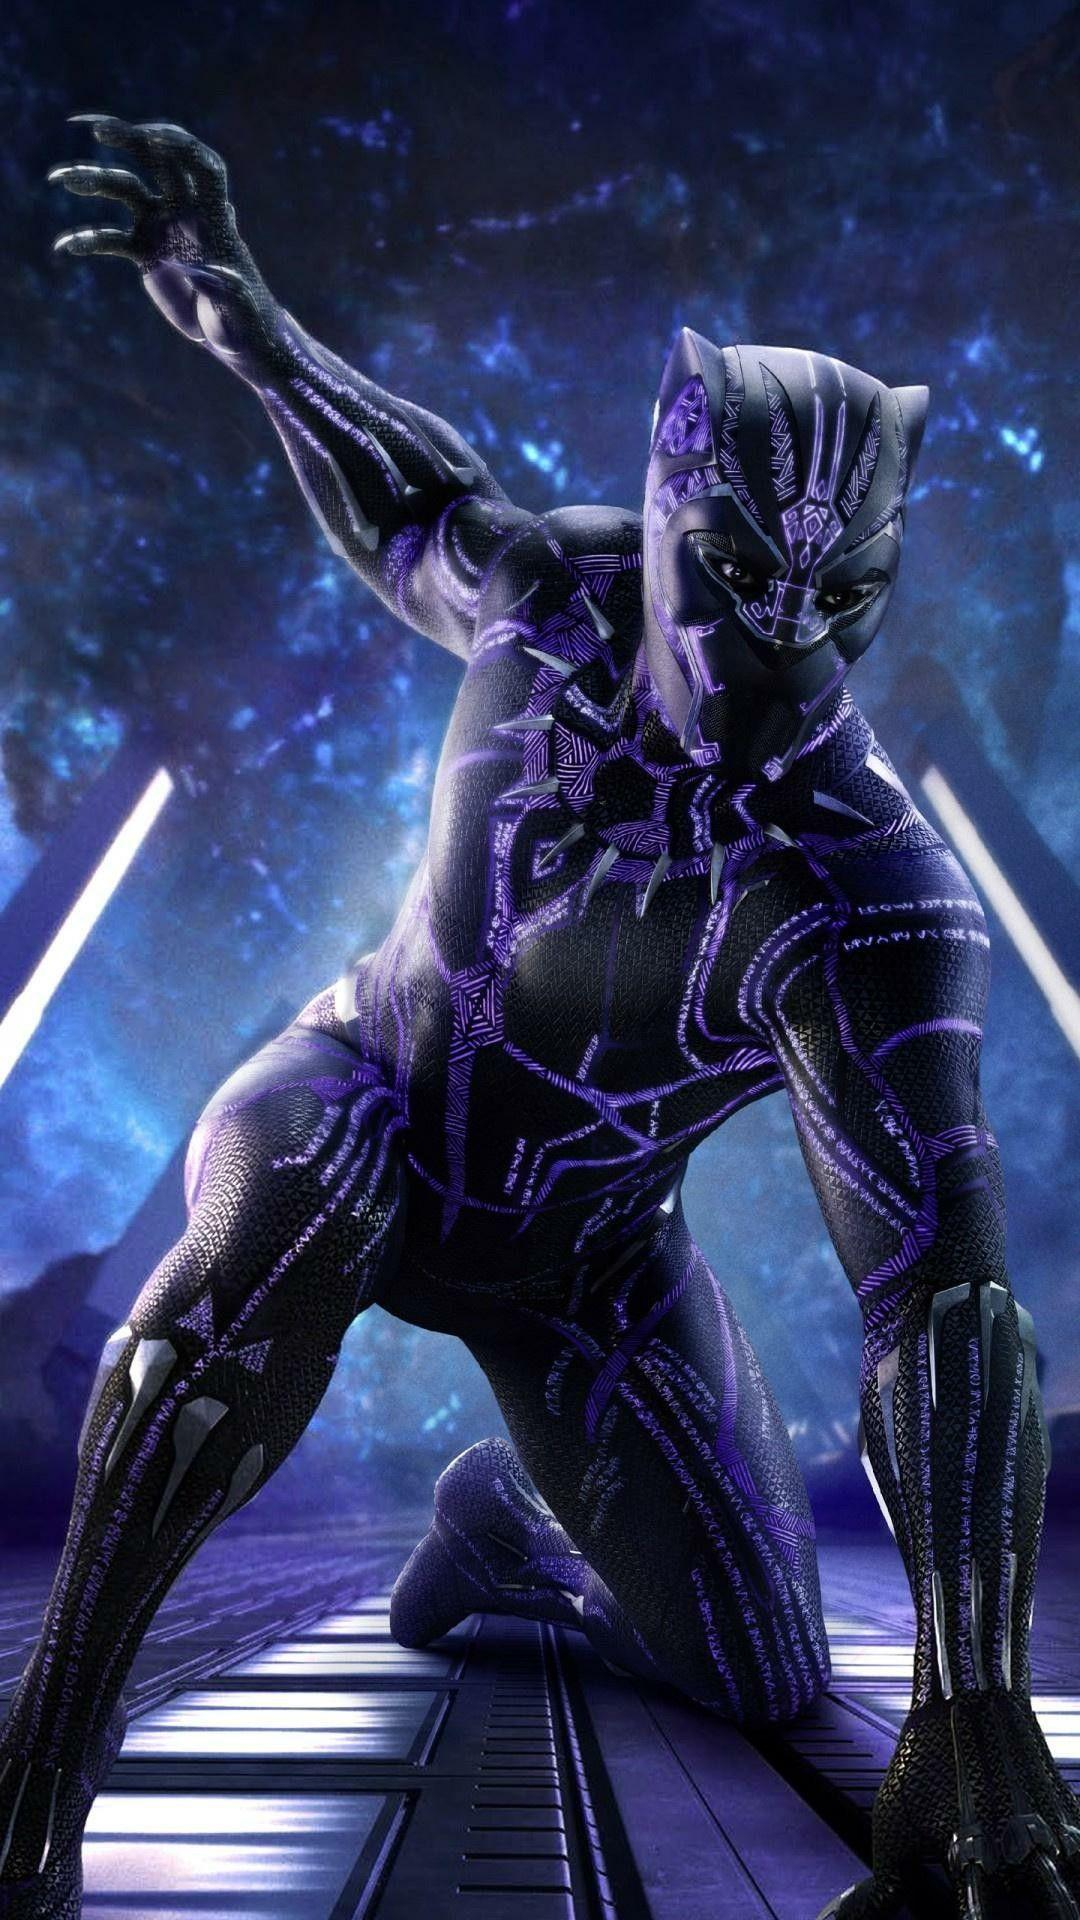 Best Mobile Black Panther Wallpapers - Wallpaper Cave